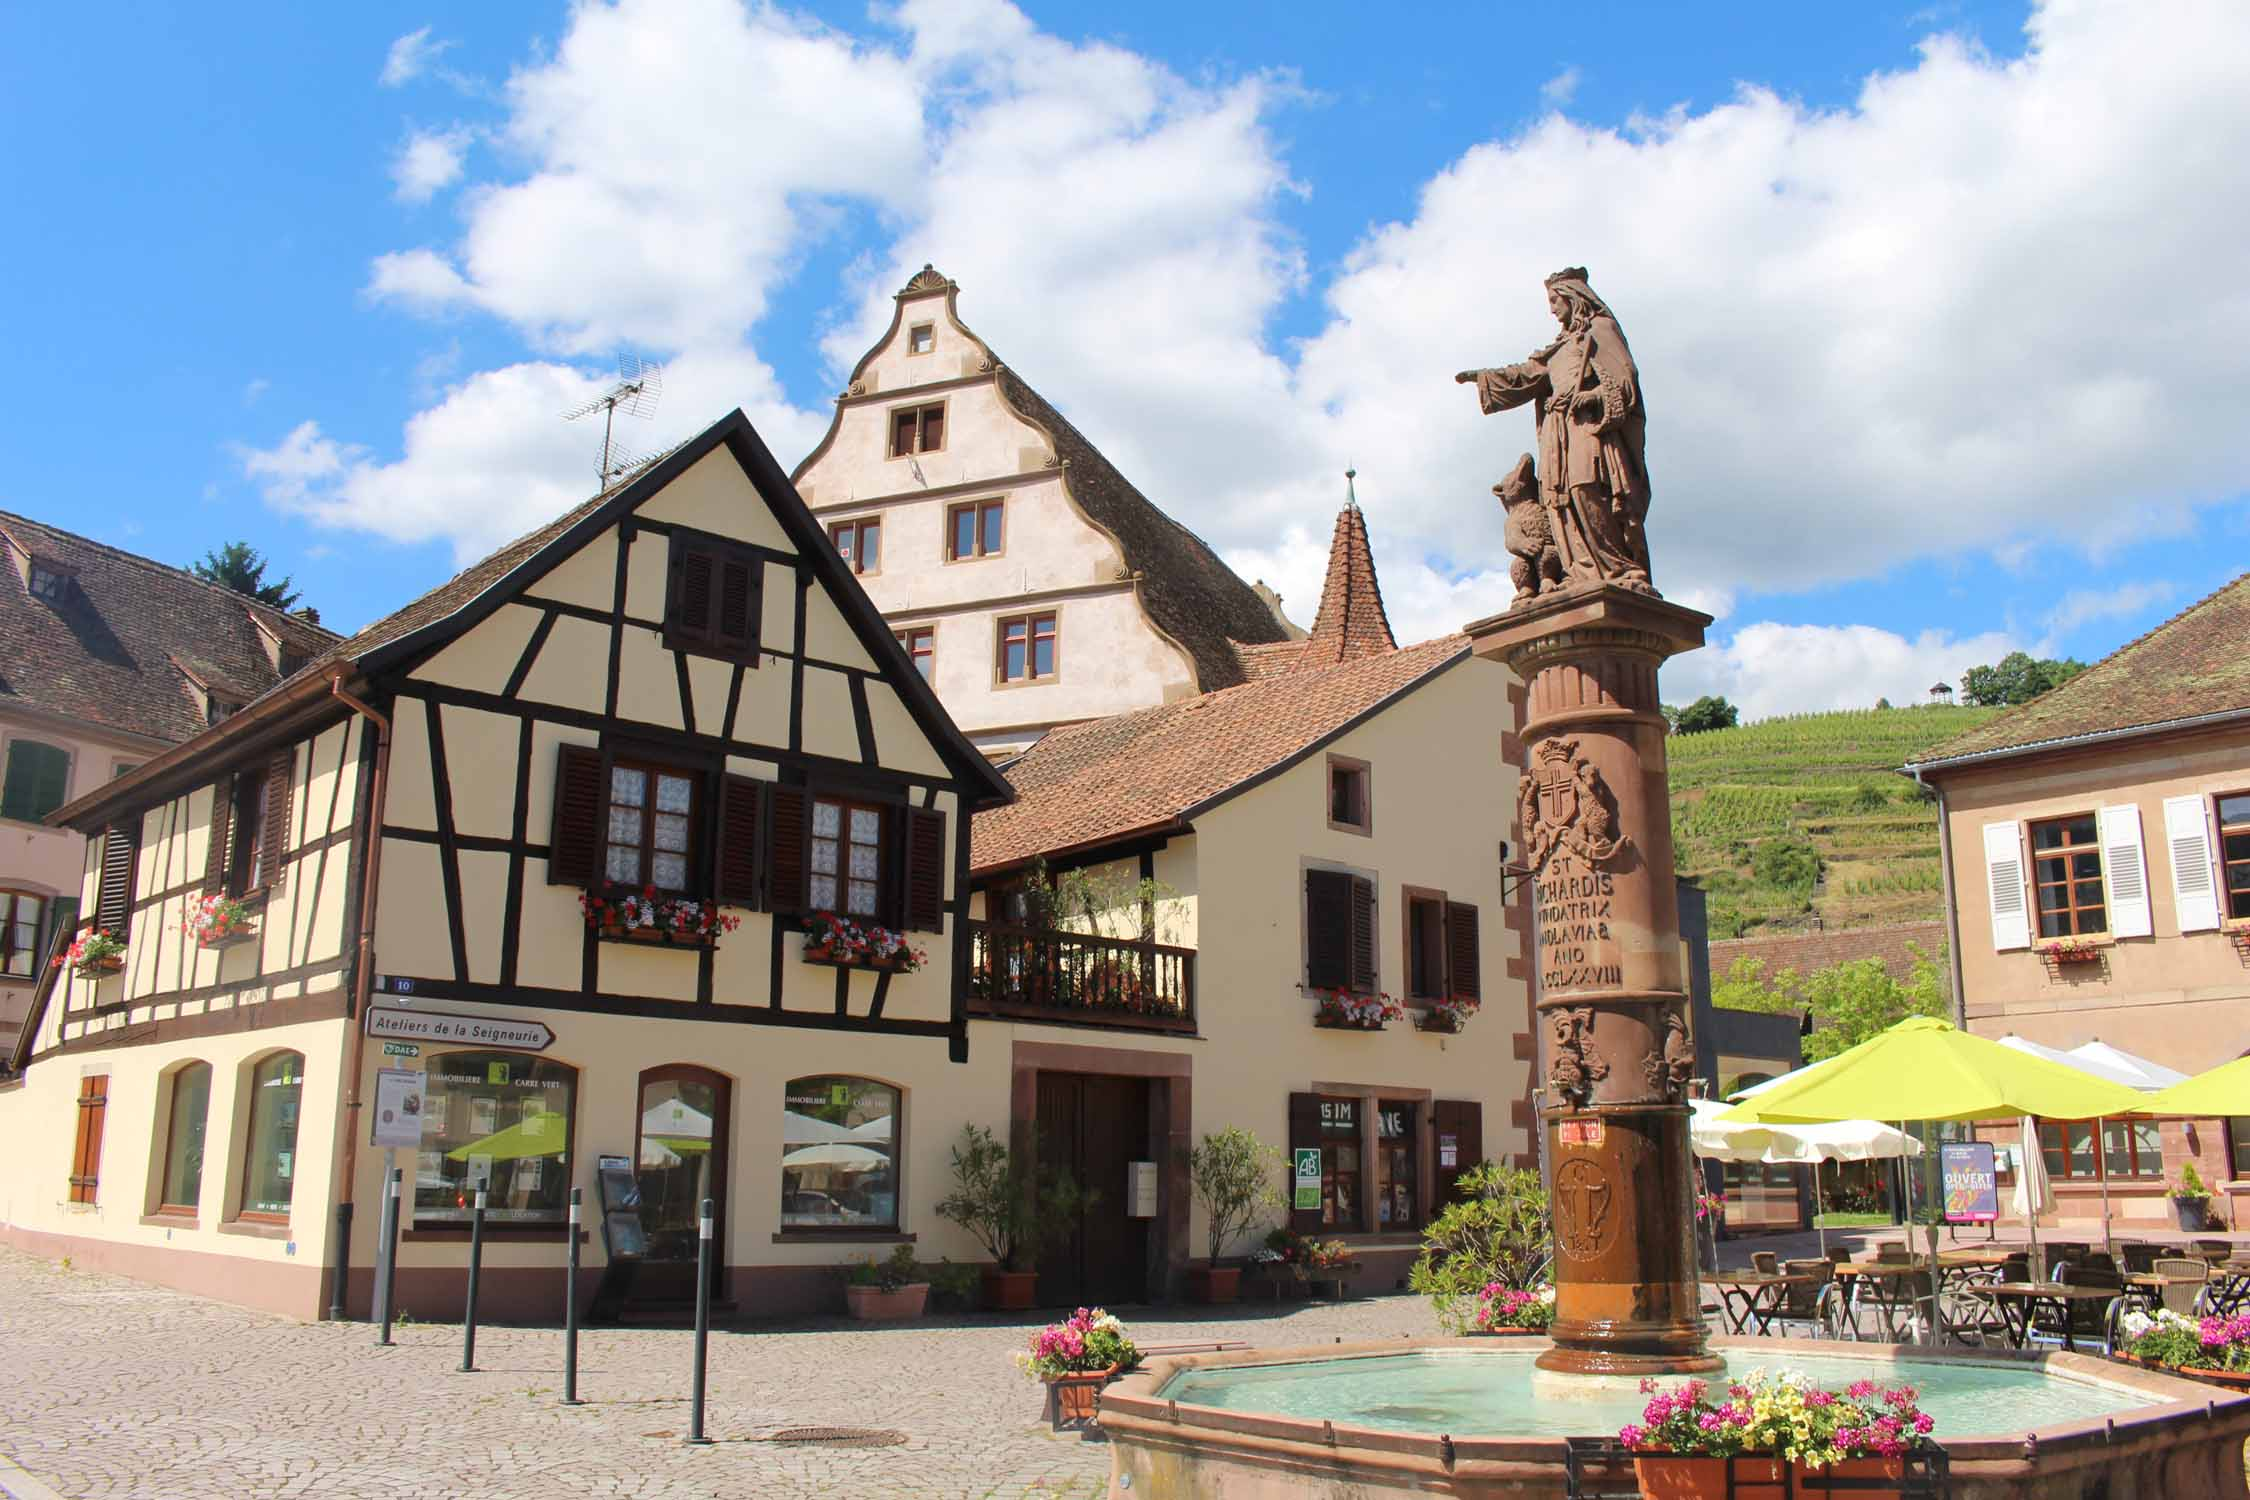 Andlau, Fontana Sainte-Richarde